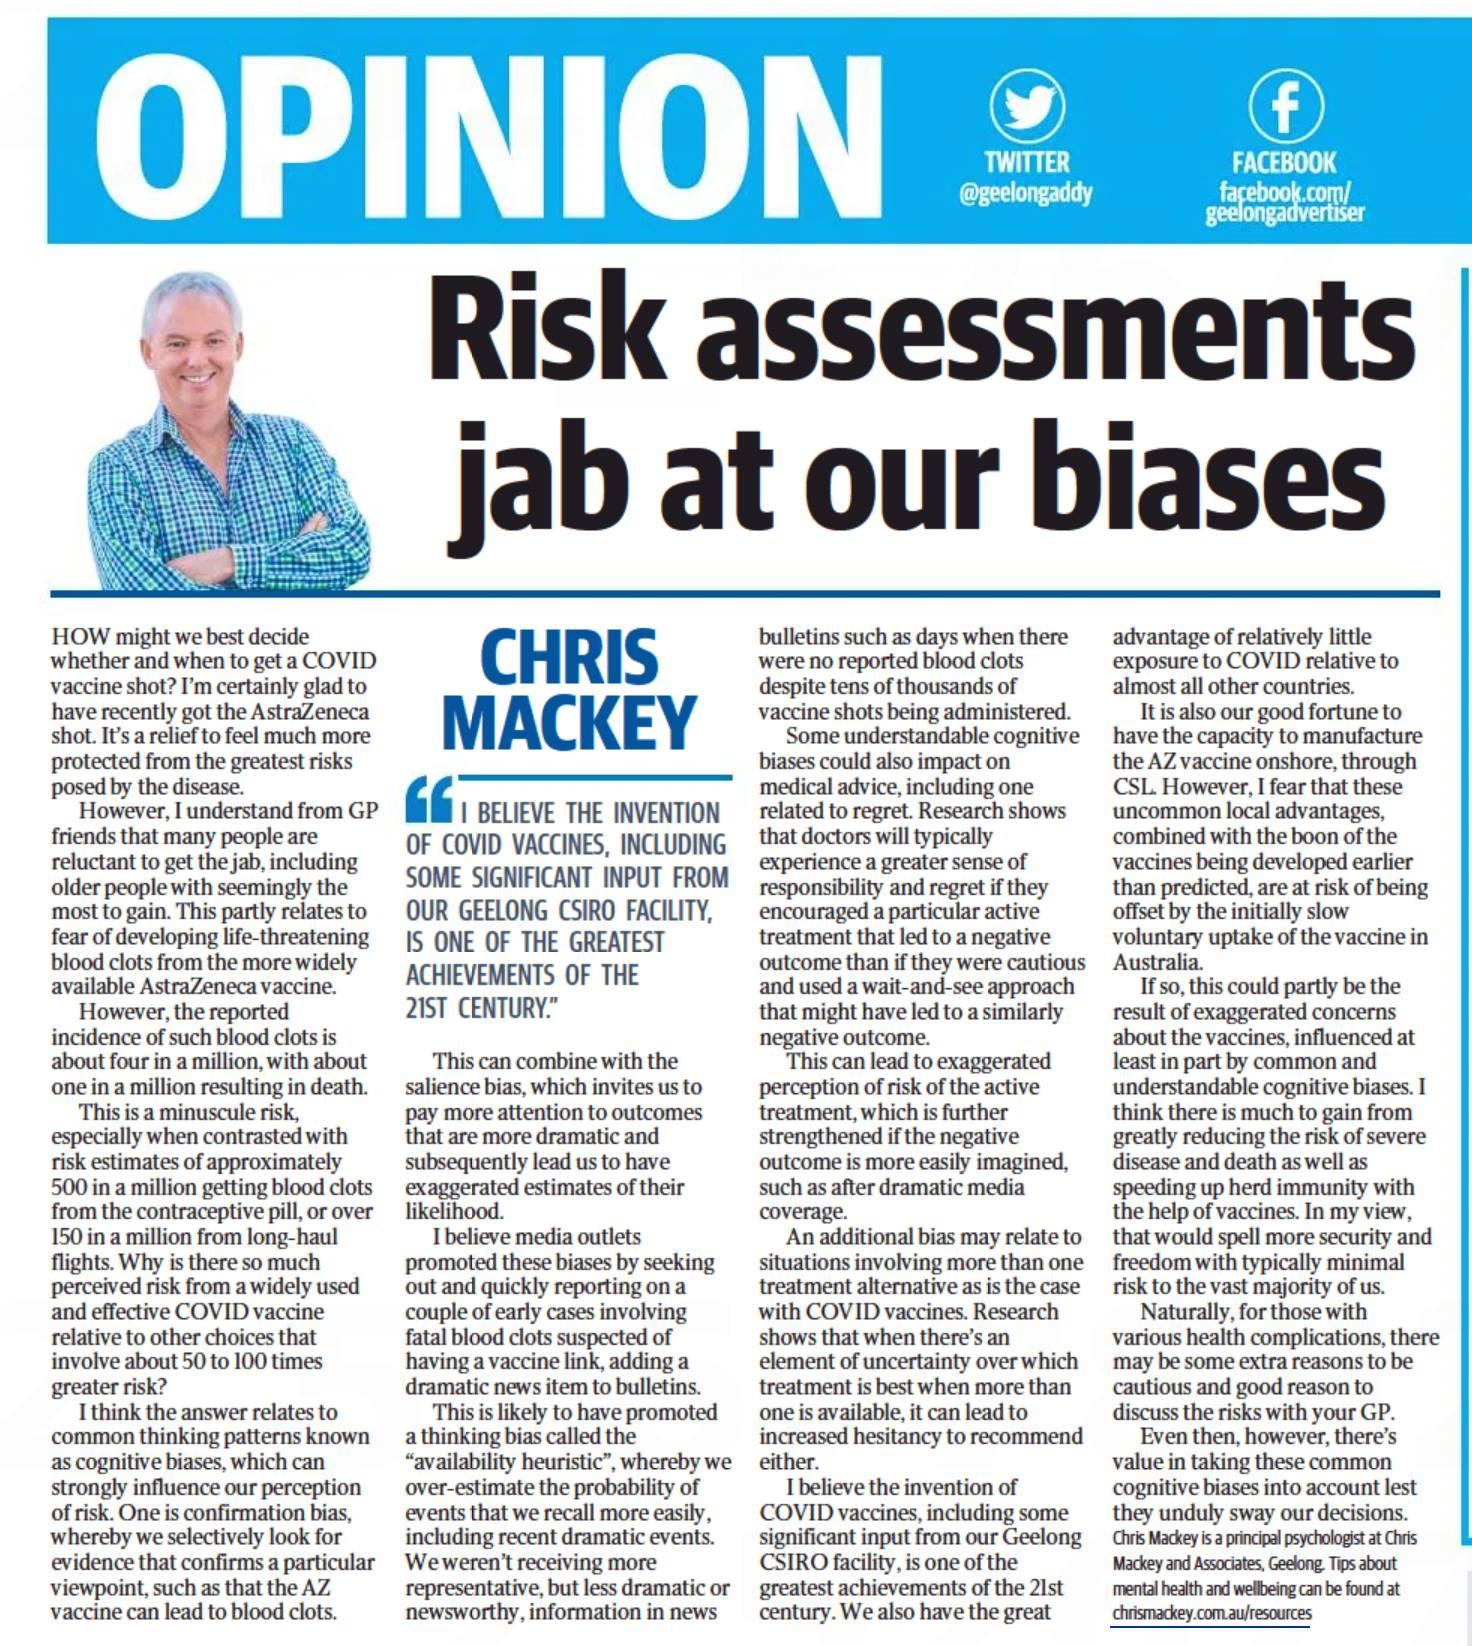 an article by chris mackey